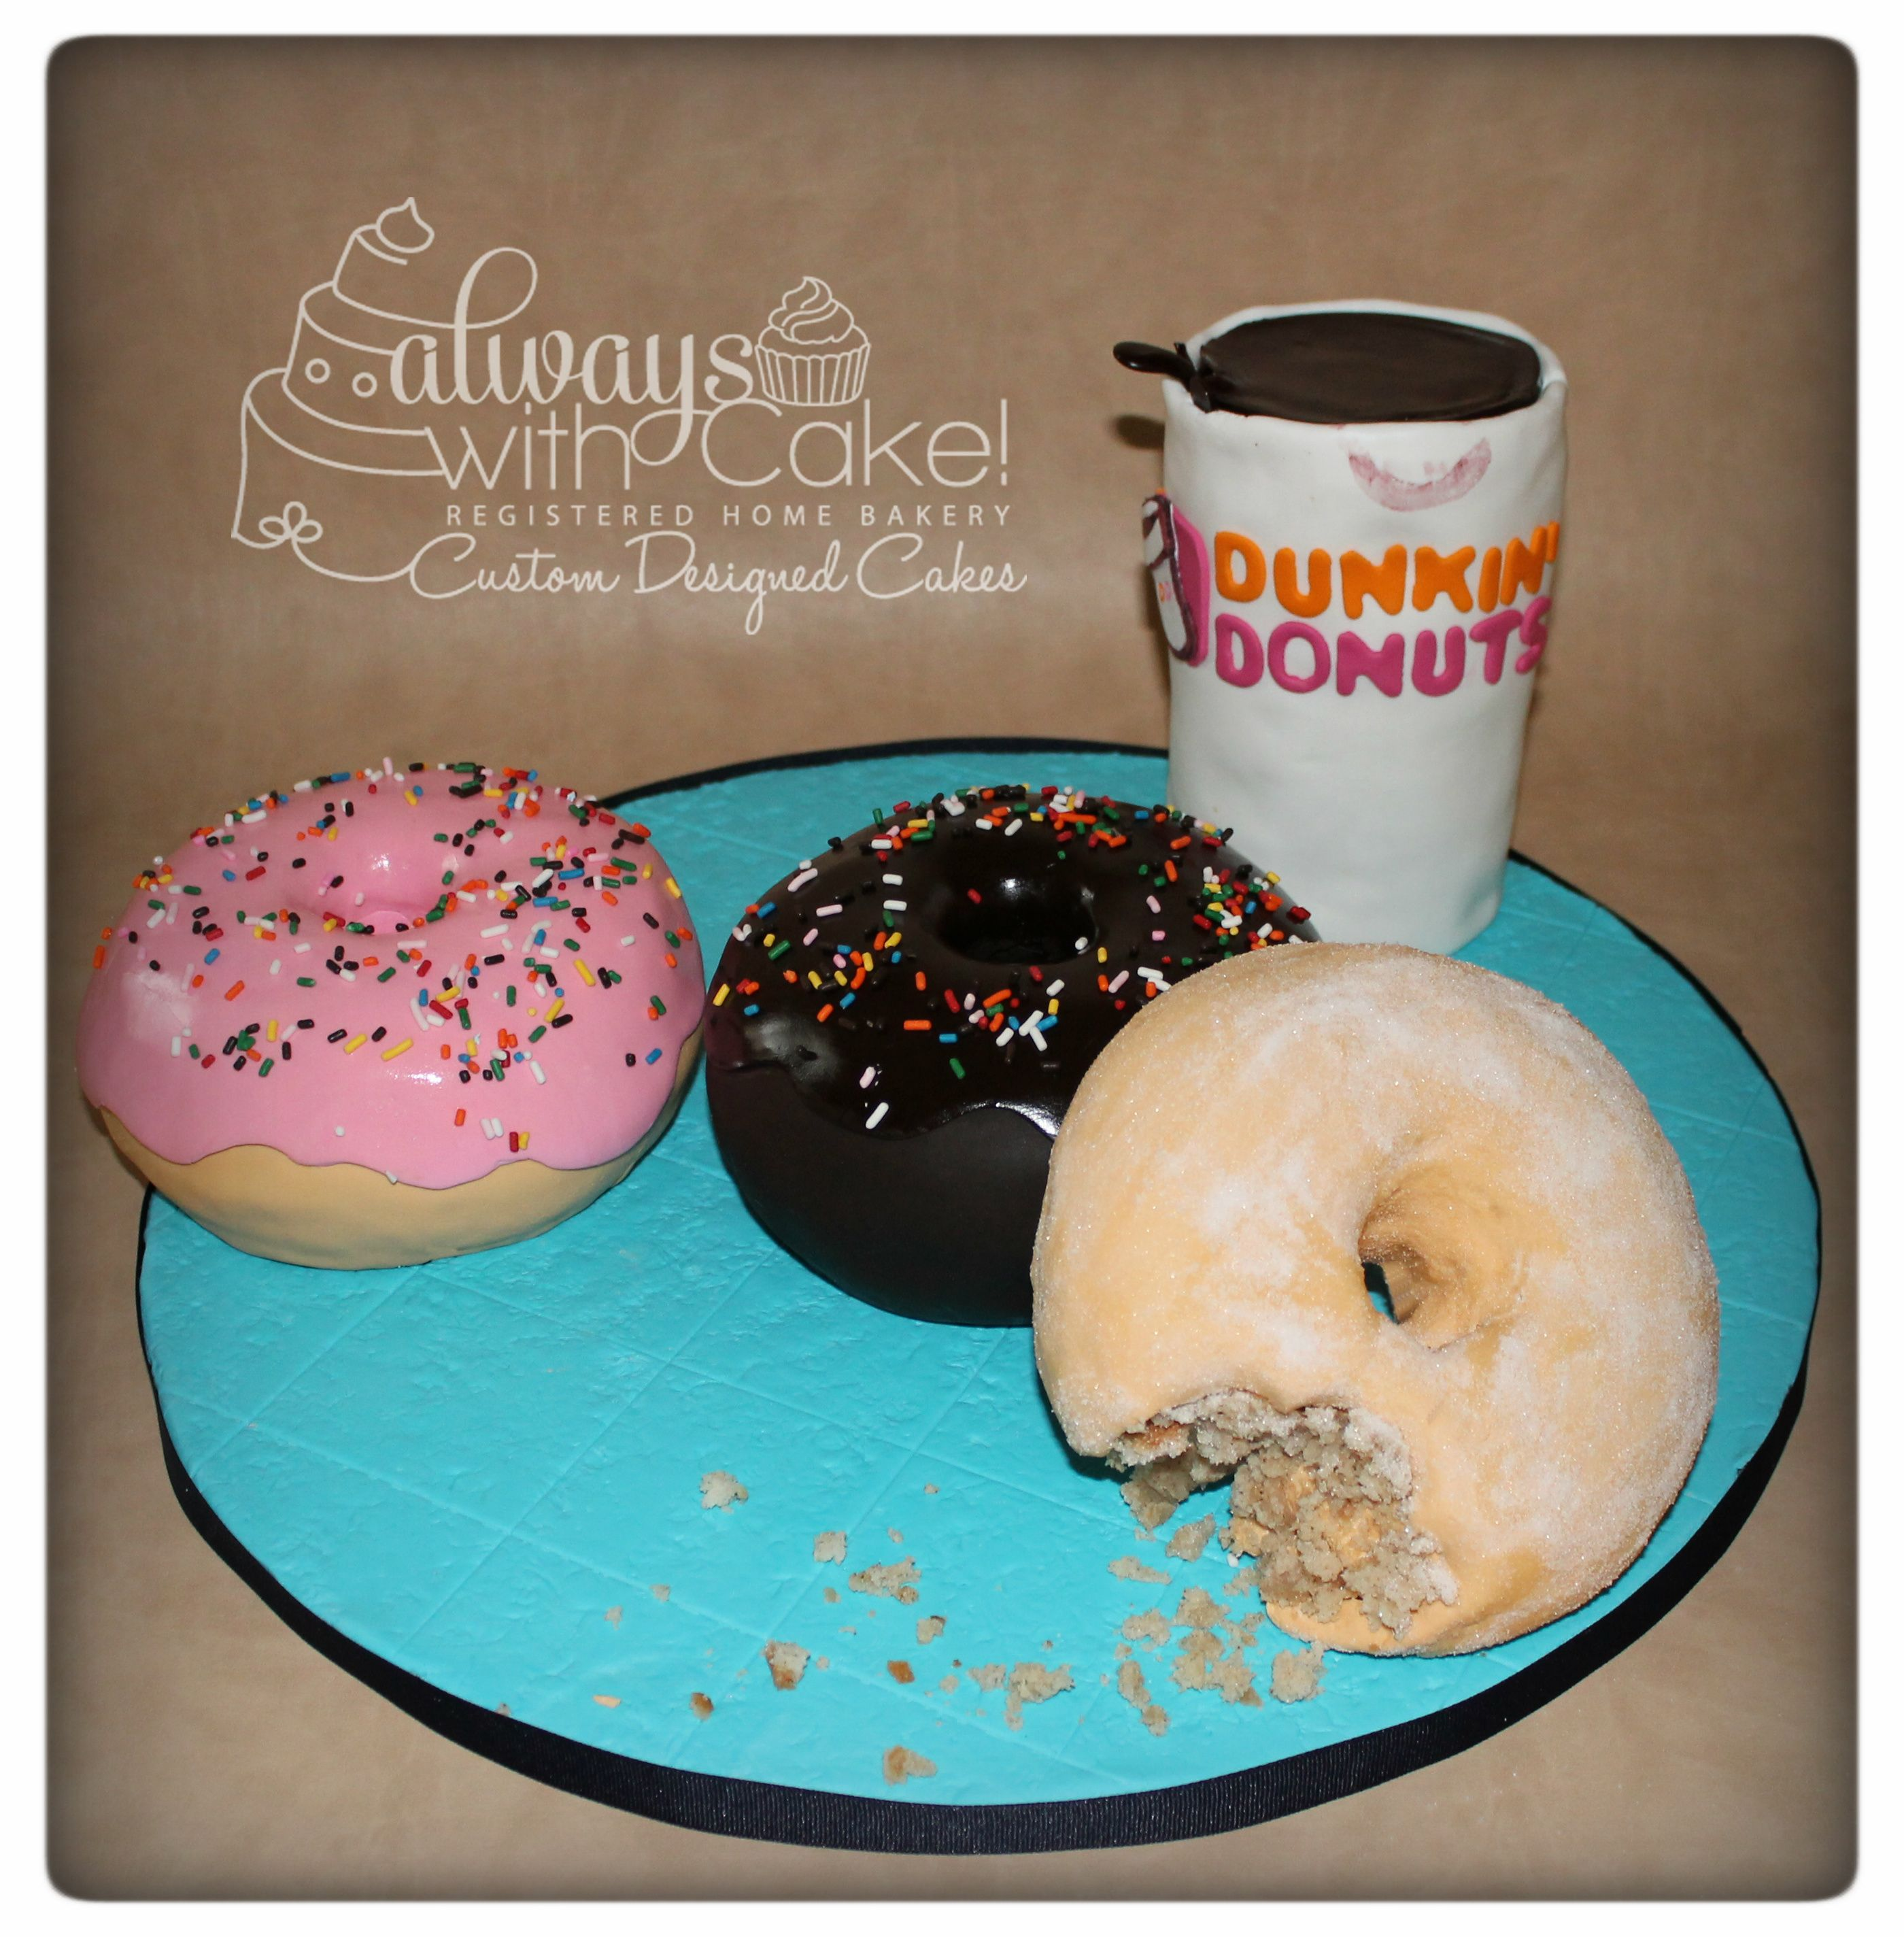 Coffee donuts bakery cakes cake servings coffee recipes